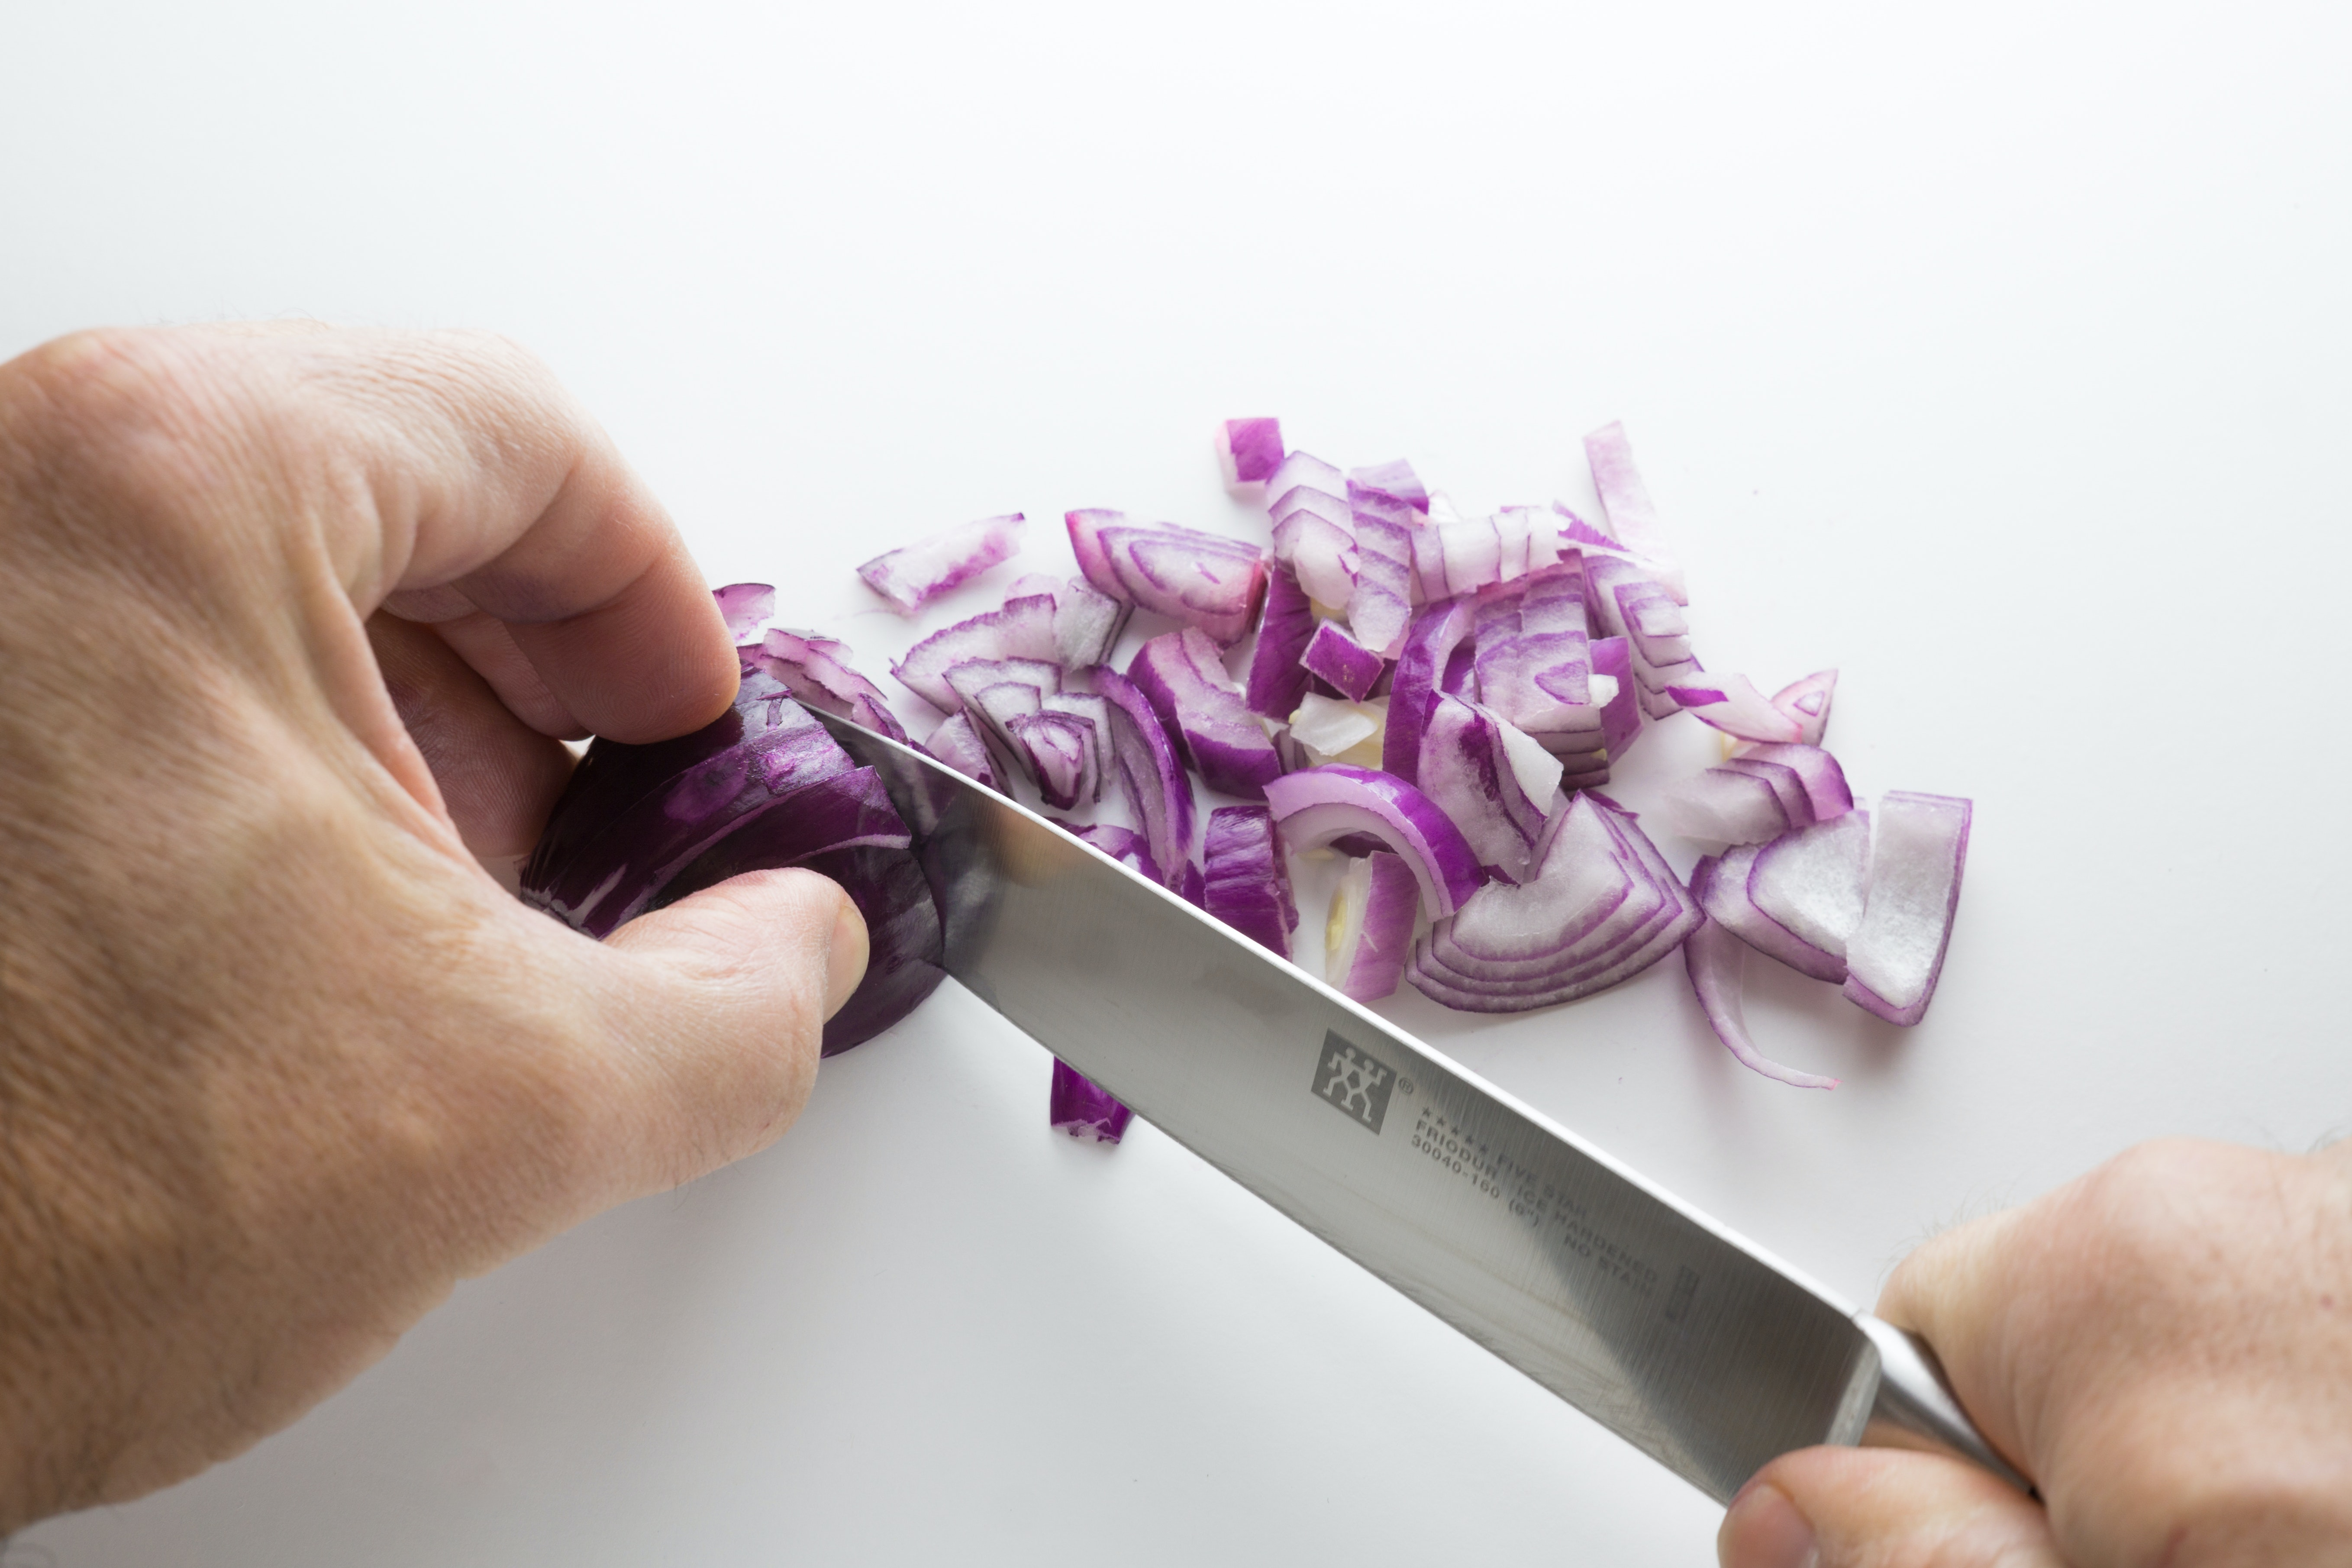 Red onion offers incredible benefits for health due to antioxidant anthocyanins